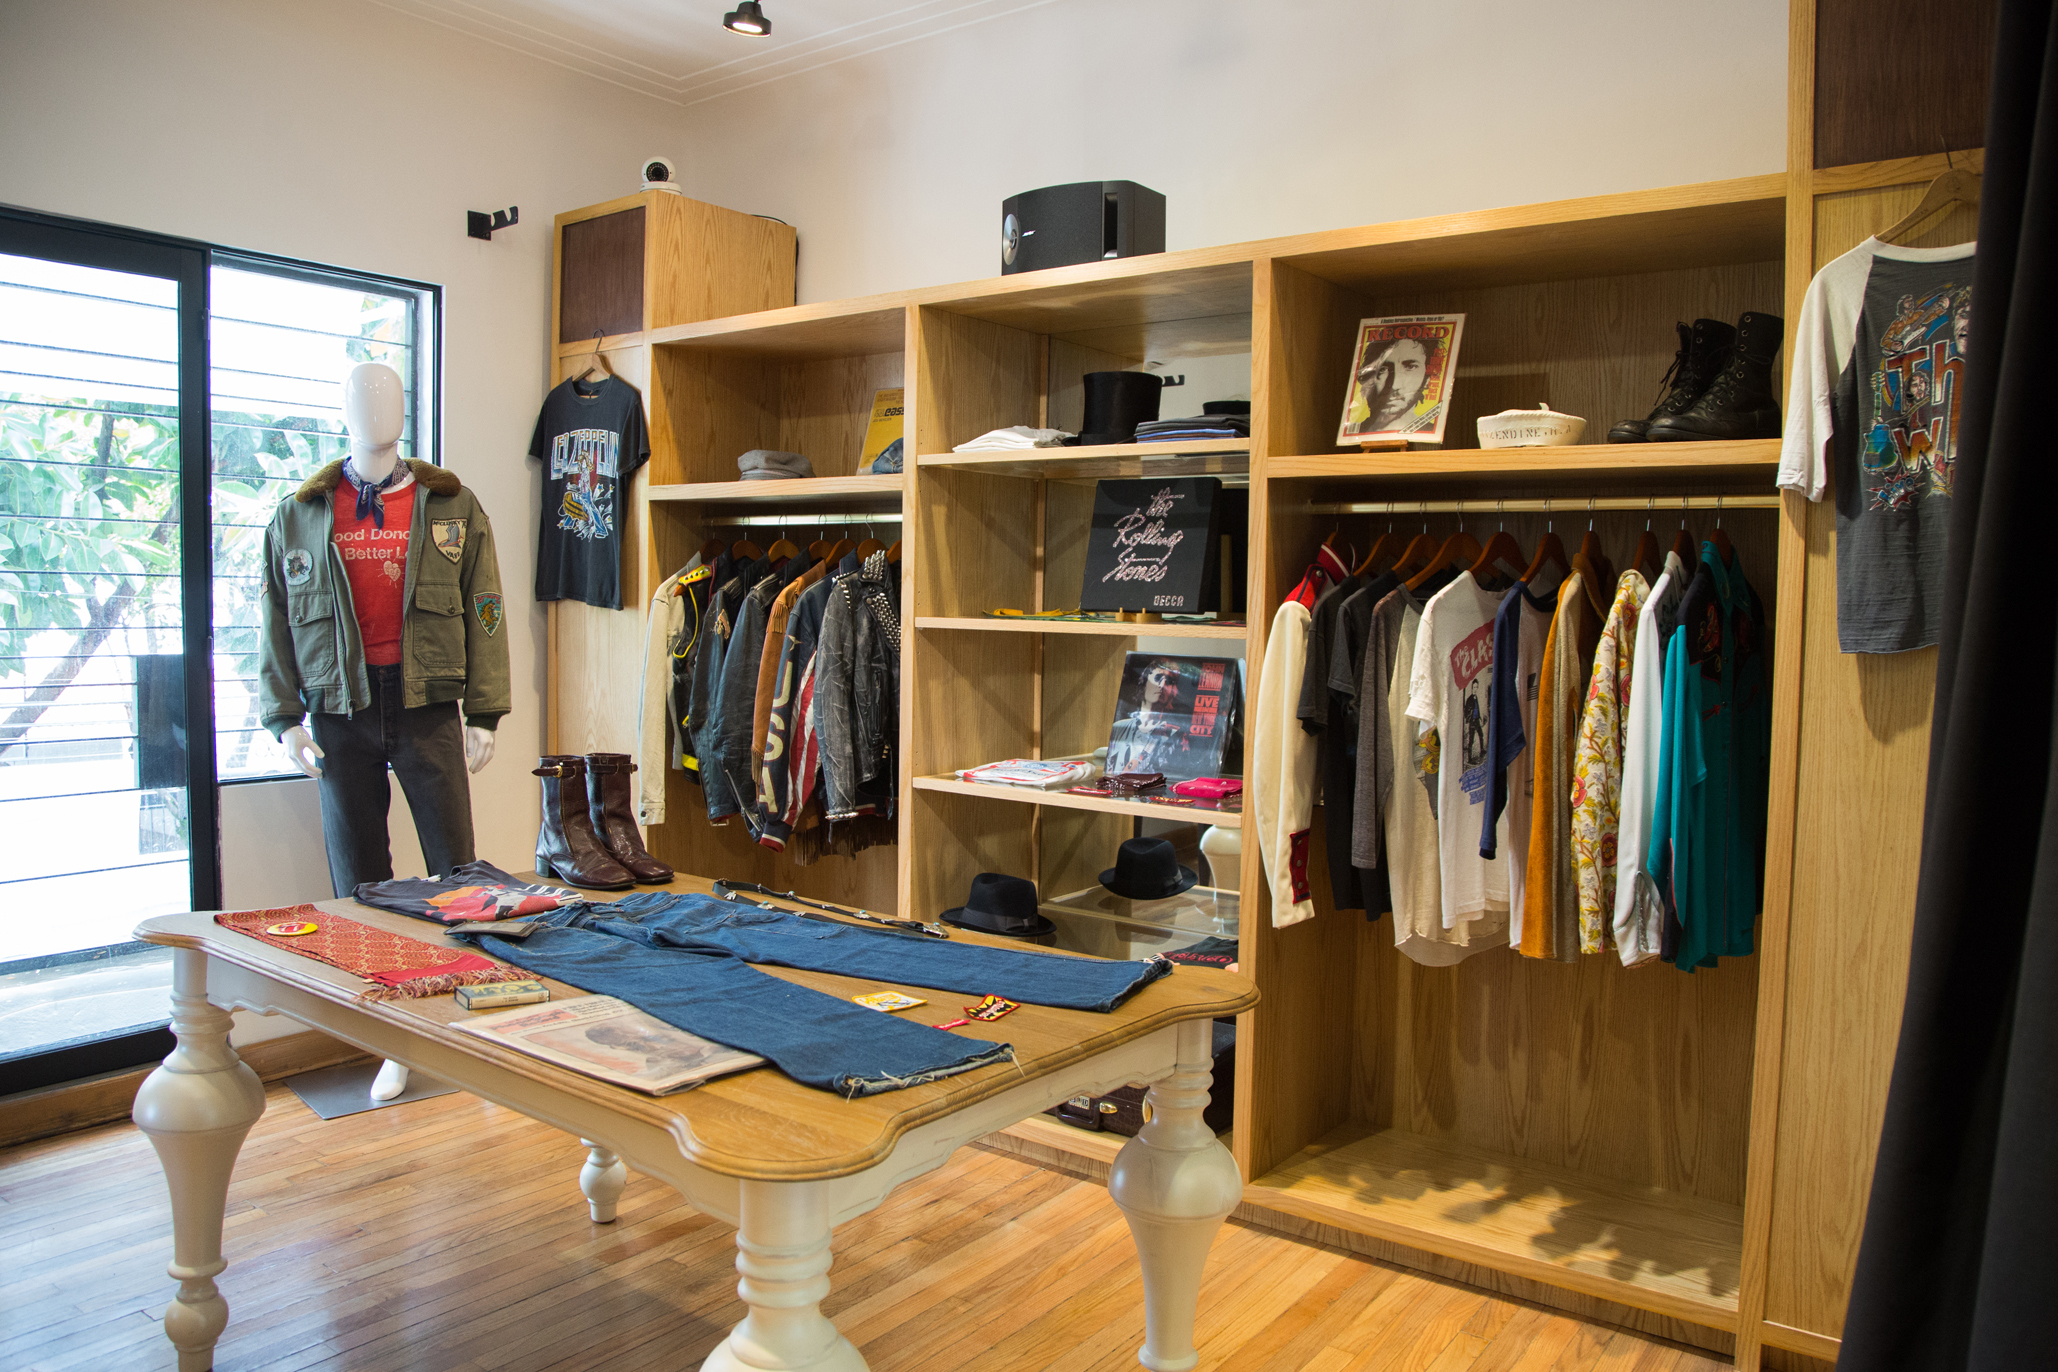 The 10 best shops in Mexico City